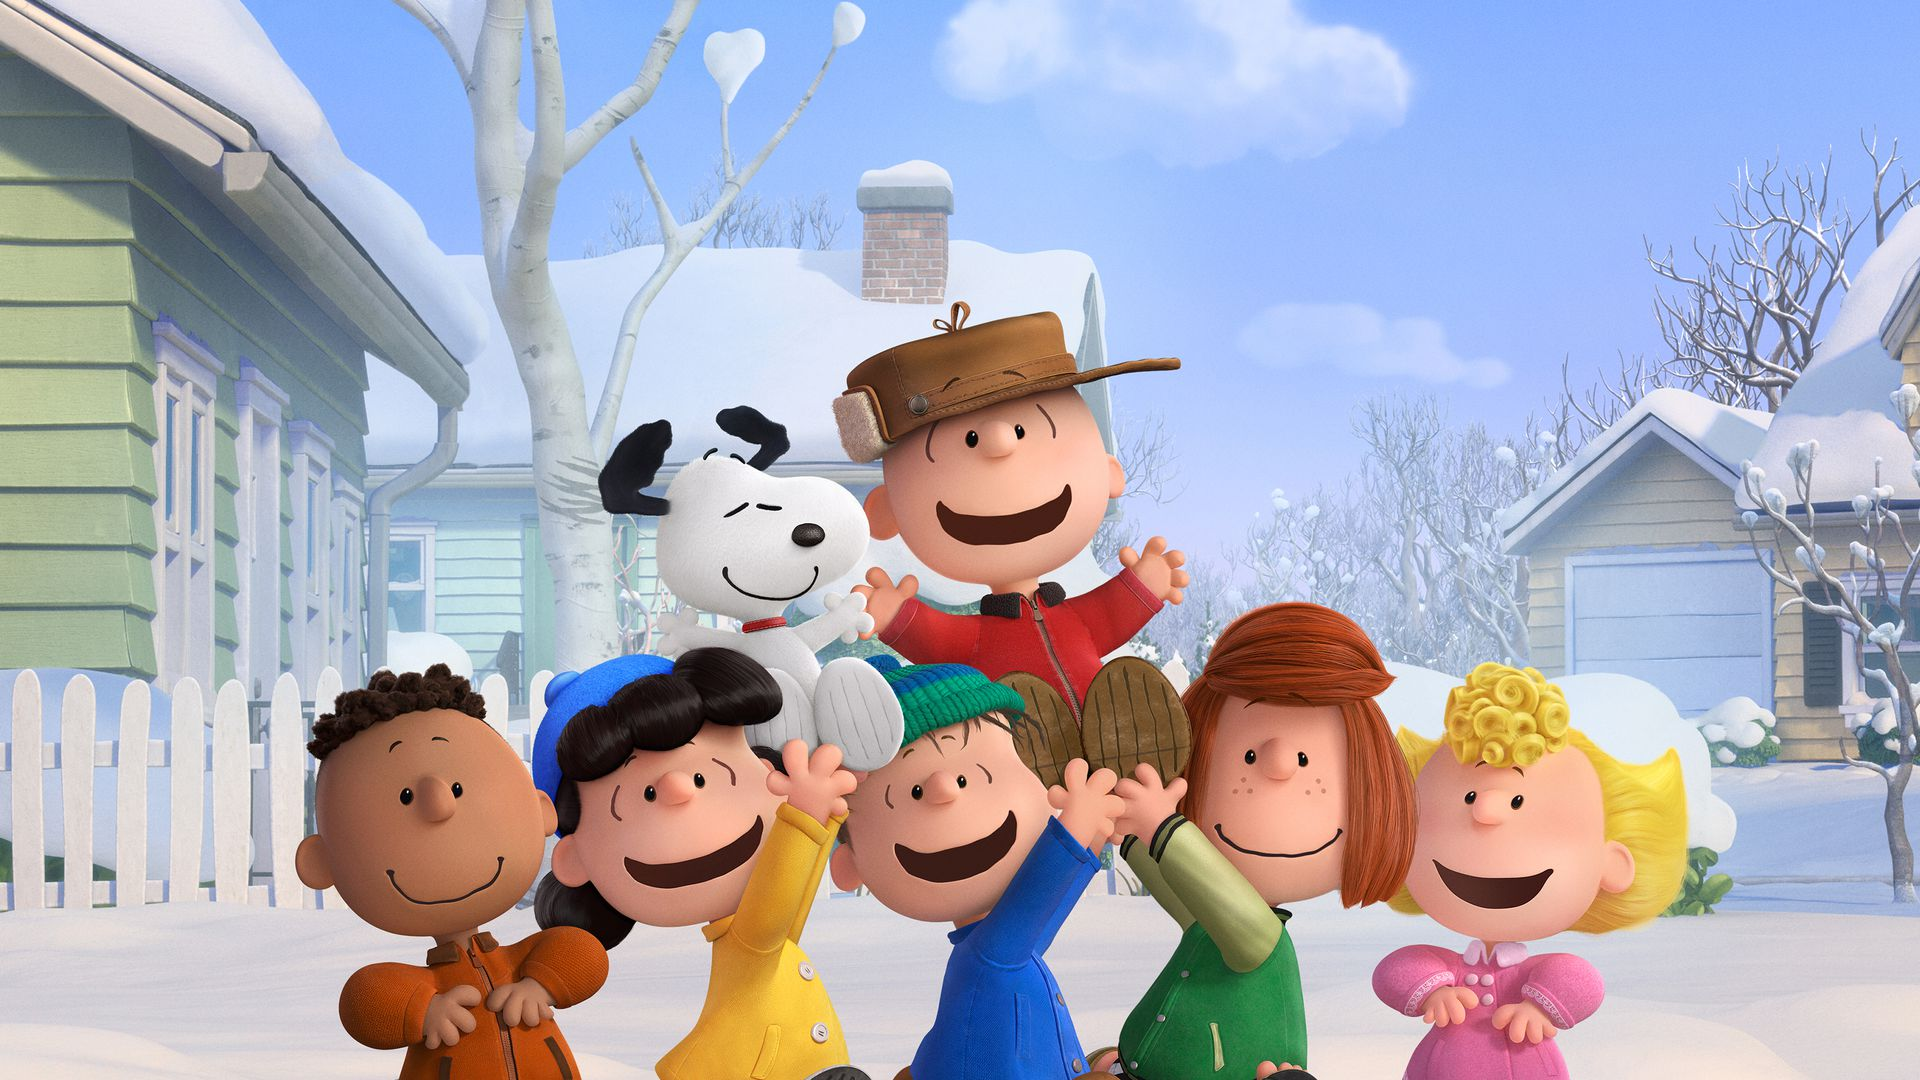 The Peanuts Movie Movie Wallpapers.